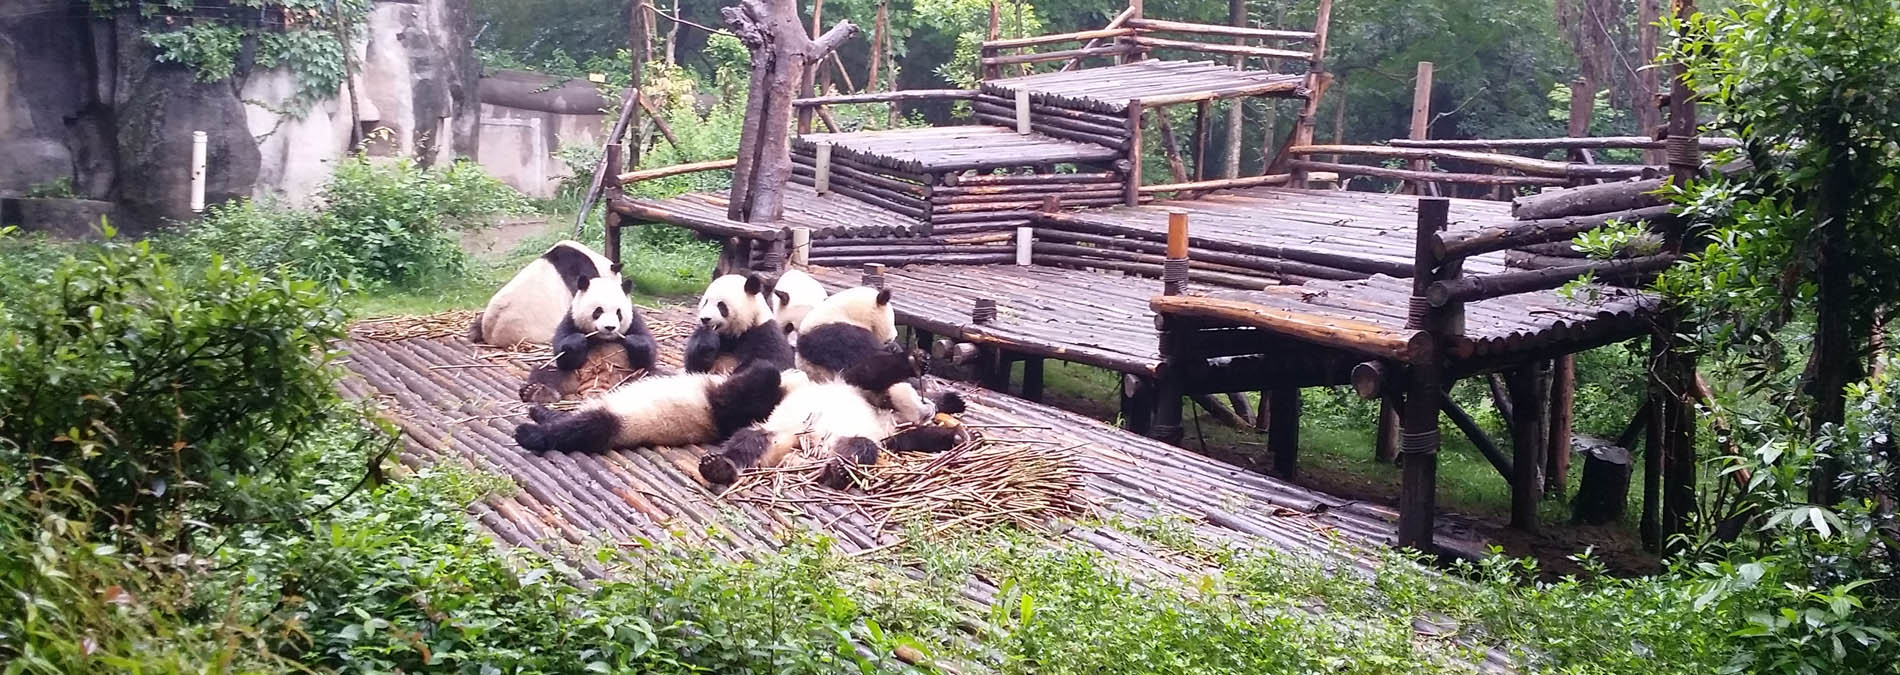 chengdu panda tours package,travel guide